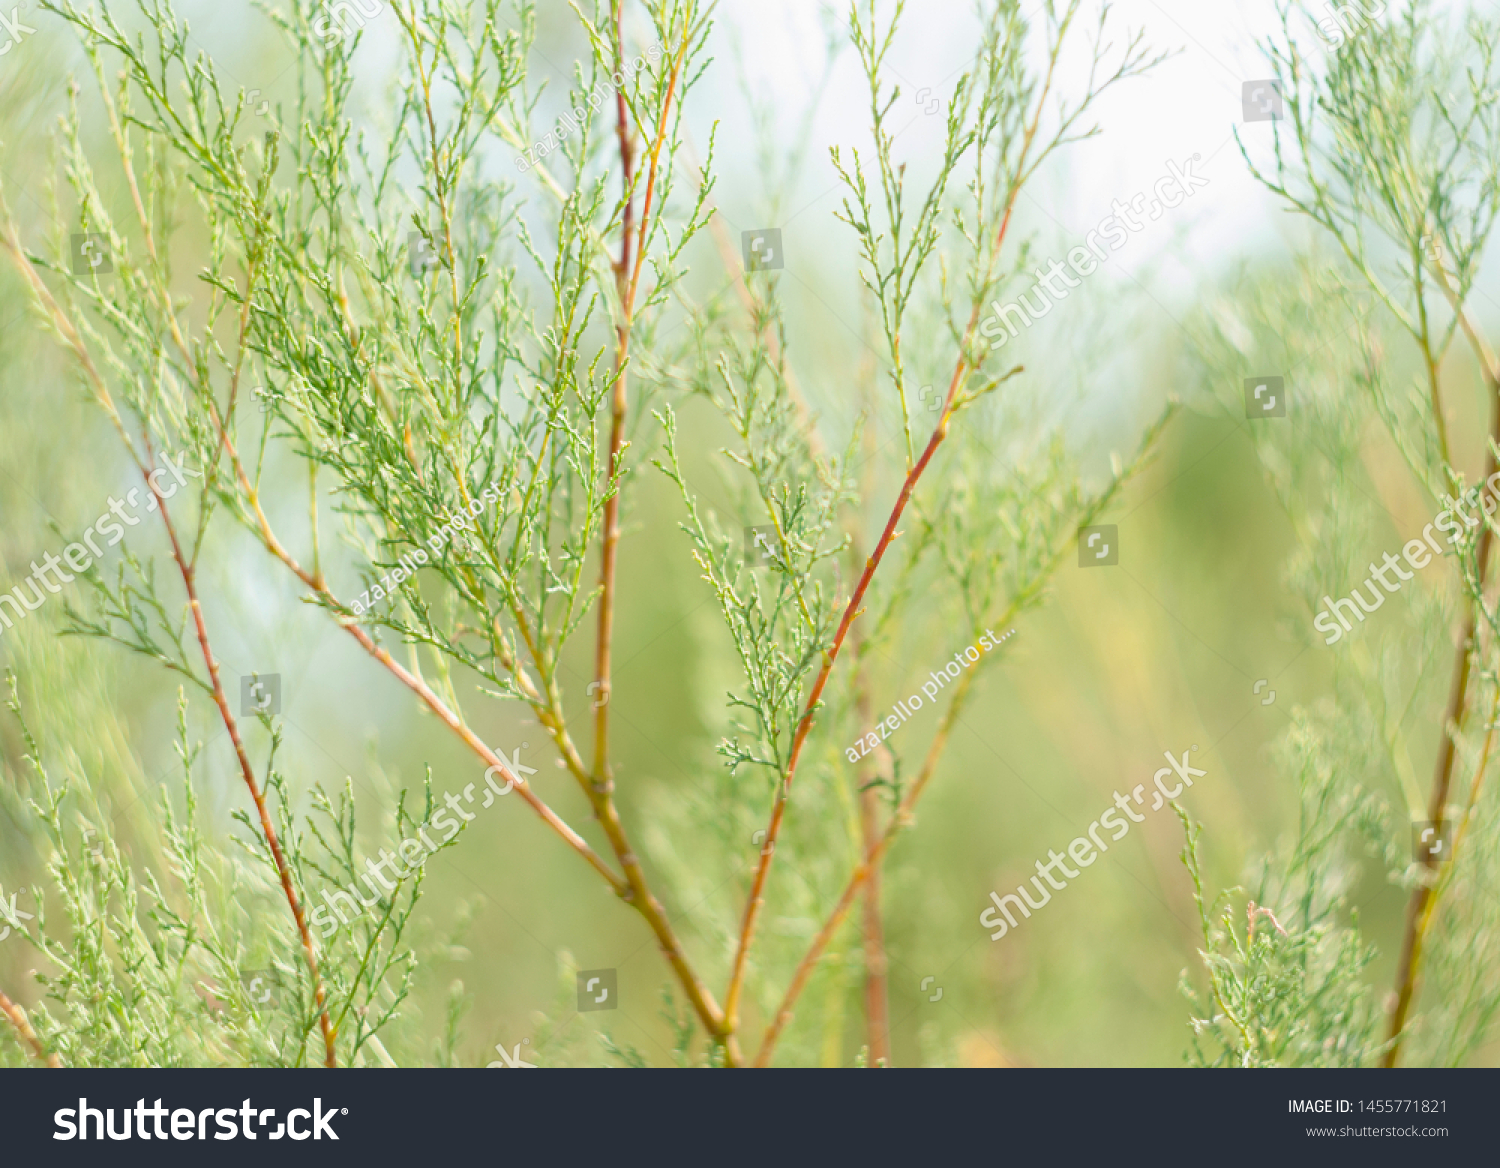 Evergreen plant. Branches of an evergreen bush #1455771821